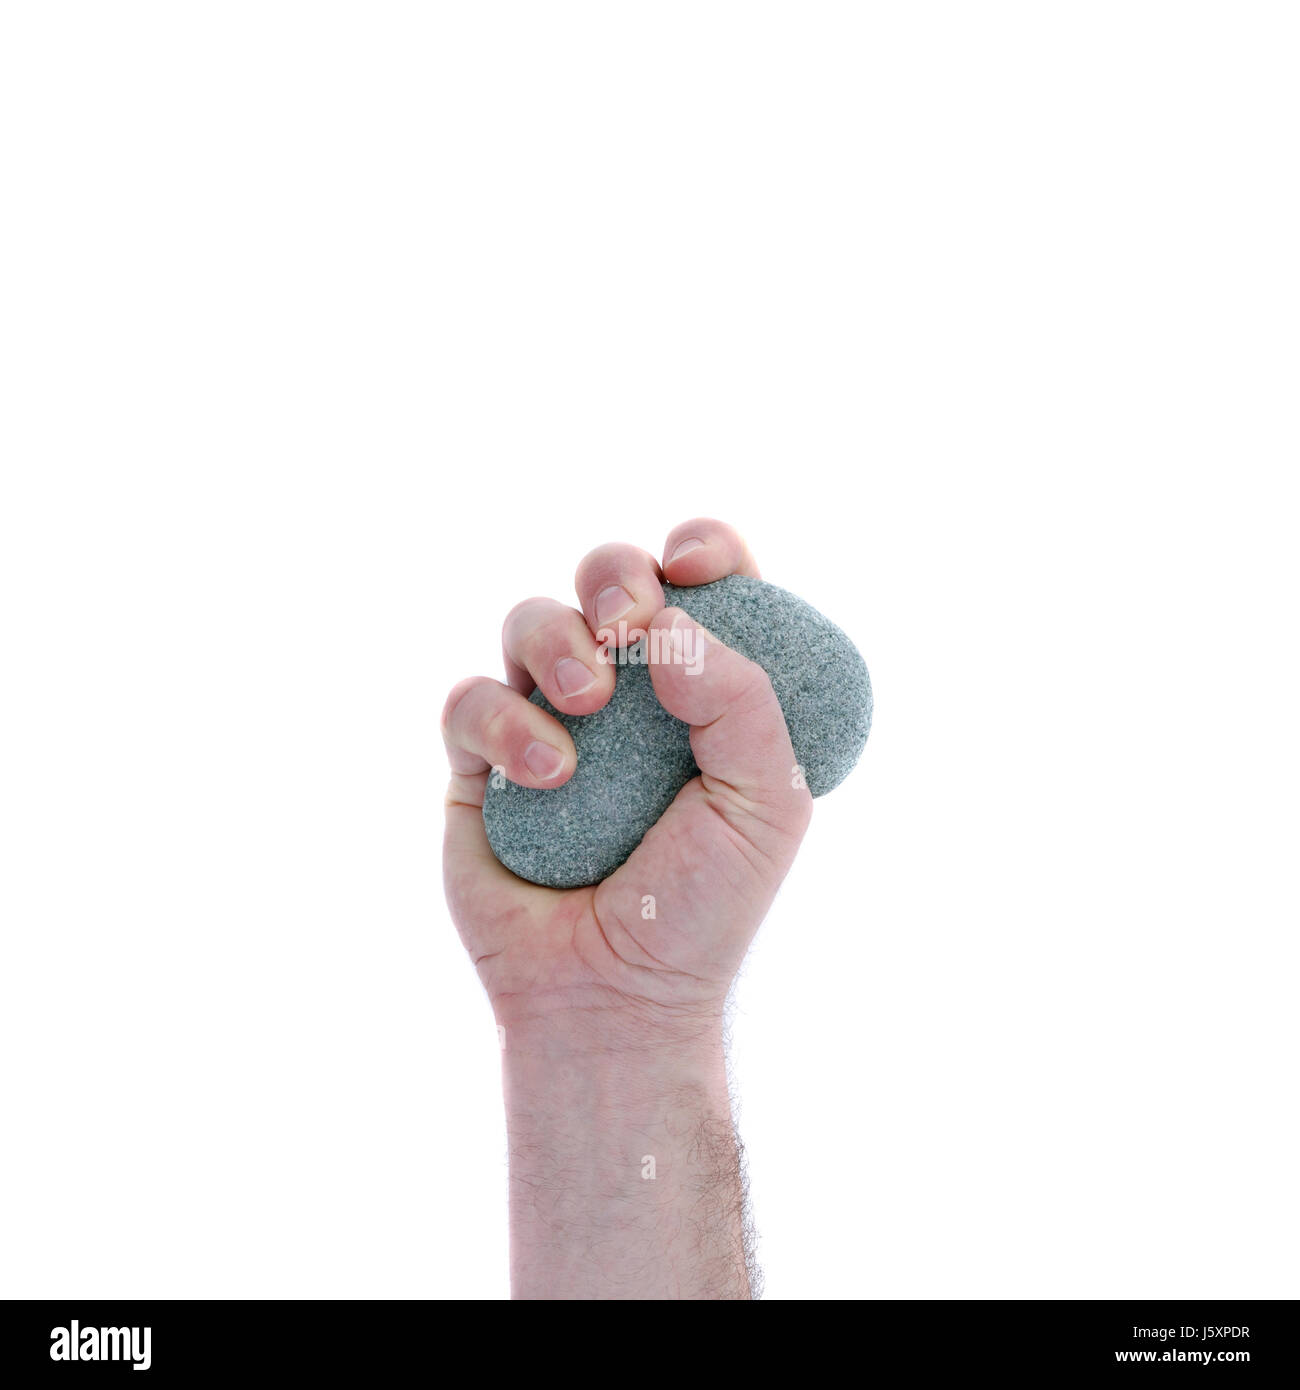 hand stone strong fist grasp strength force pictogram symbol pictograph trade - Stock Image